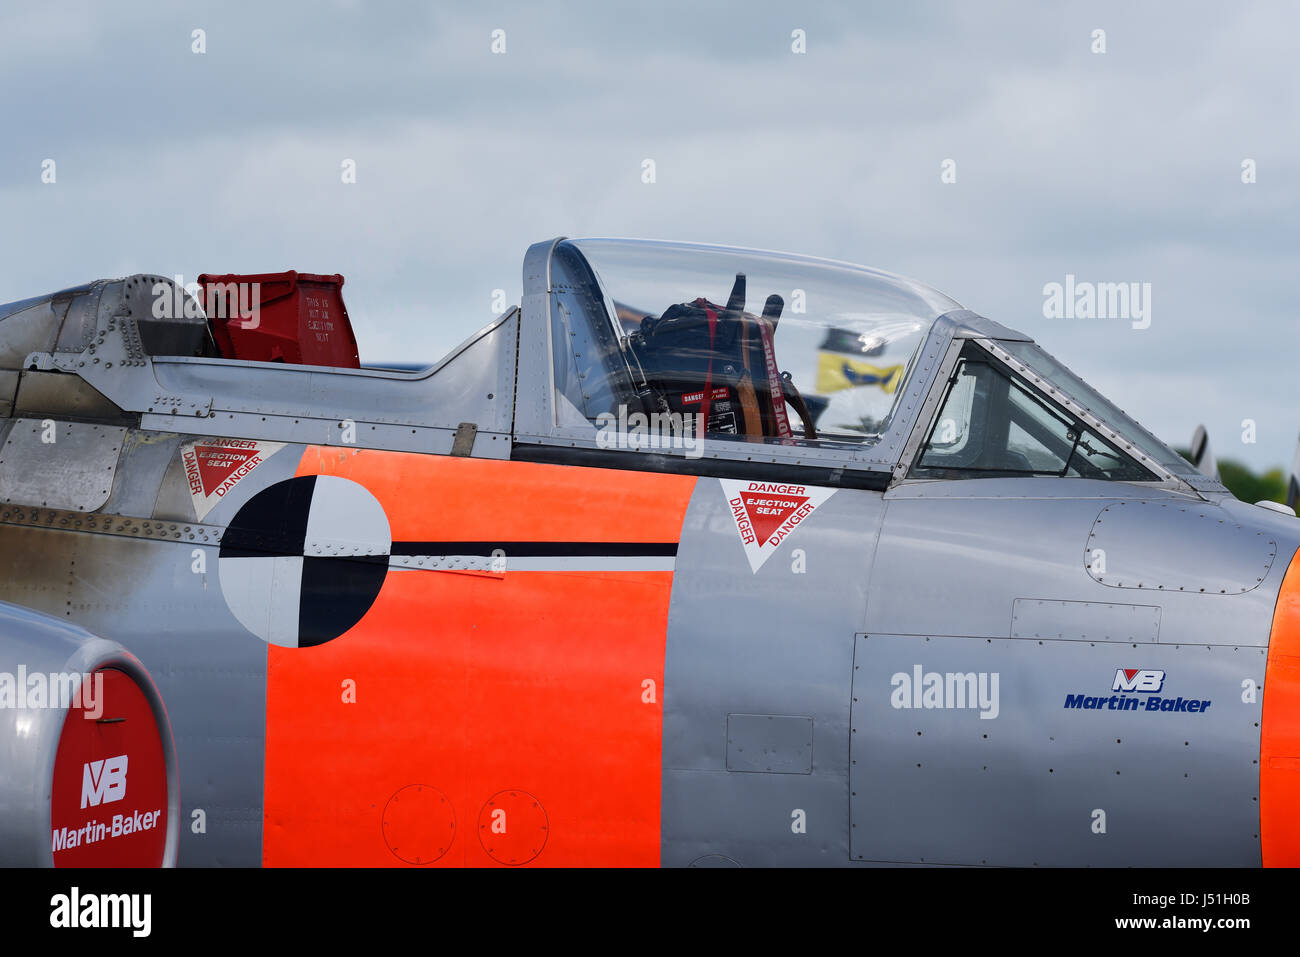 Ejection Seat And Martin Baker Aircraft Stock Photos